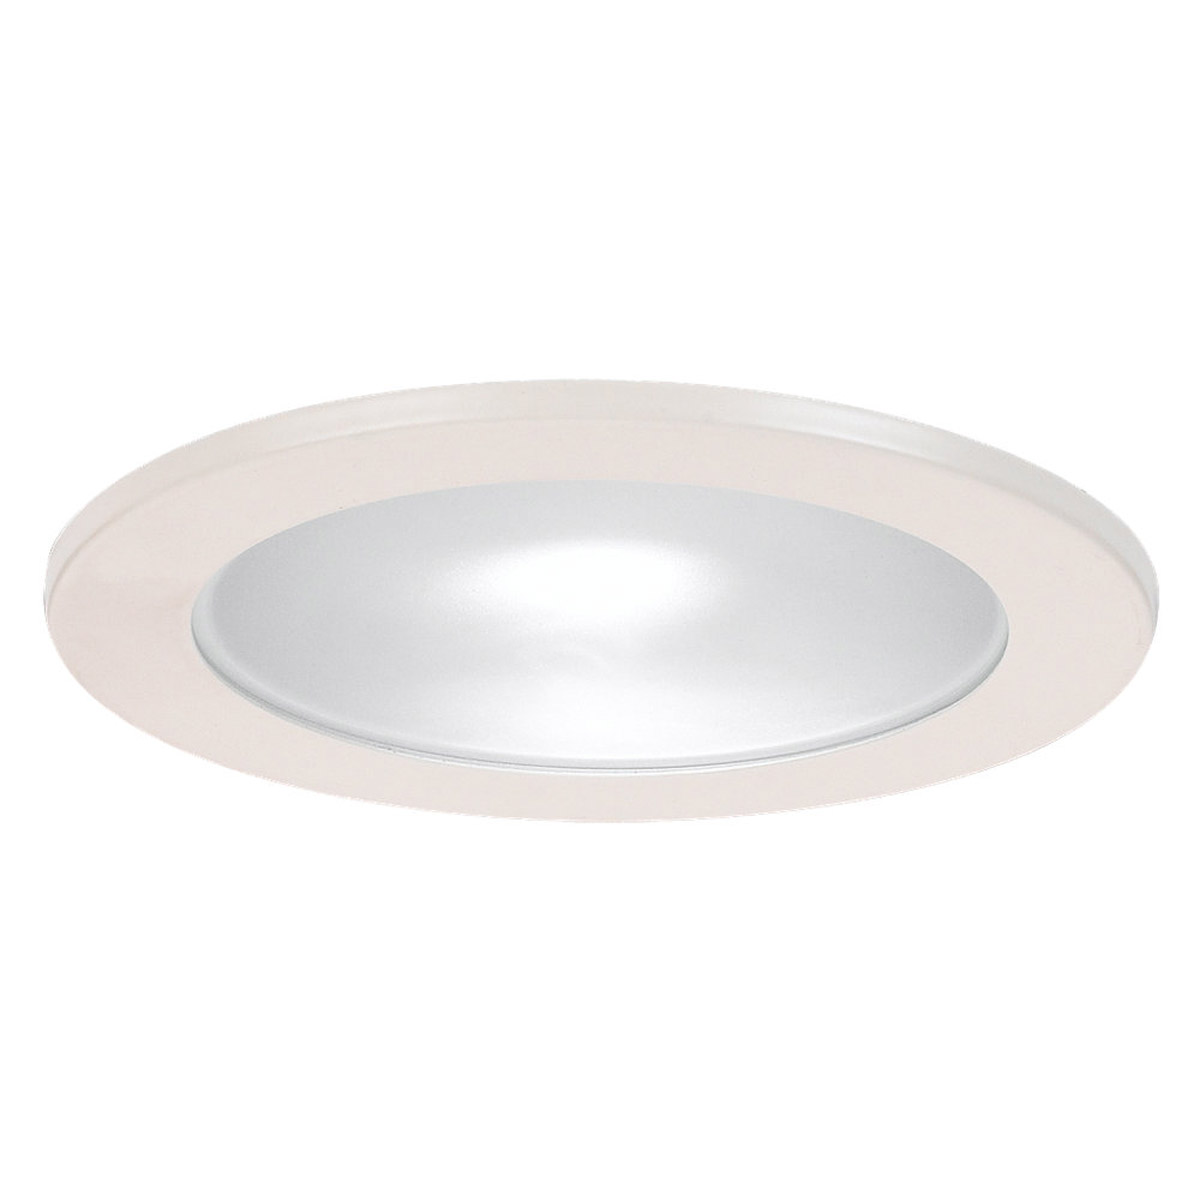 Sea Gull Lighting Signature Recessed Trim Only in White 1152AT-15 photo